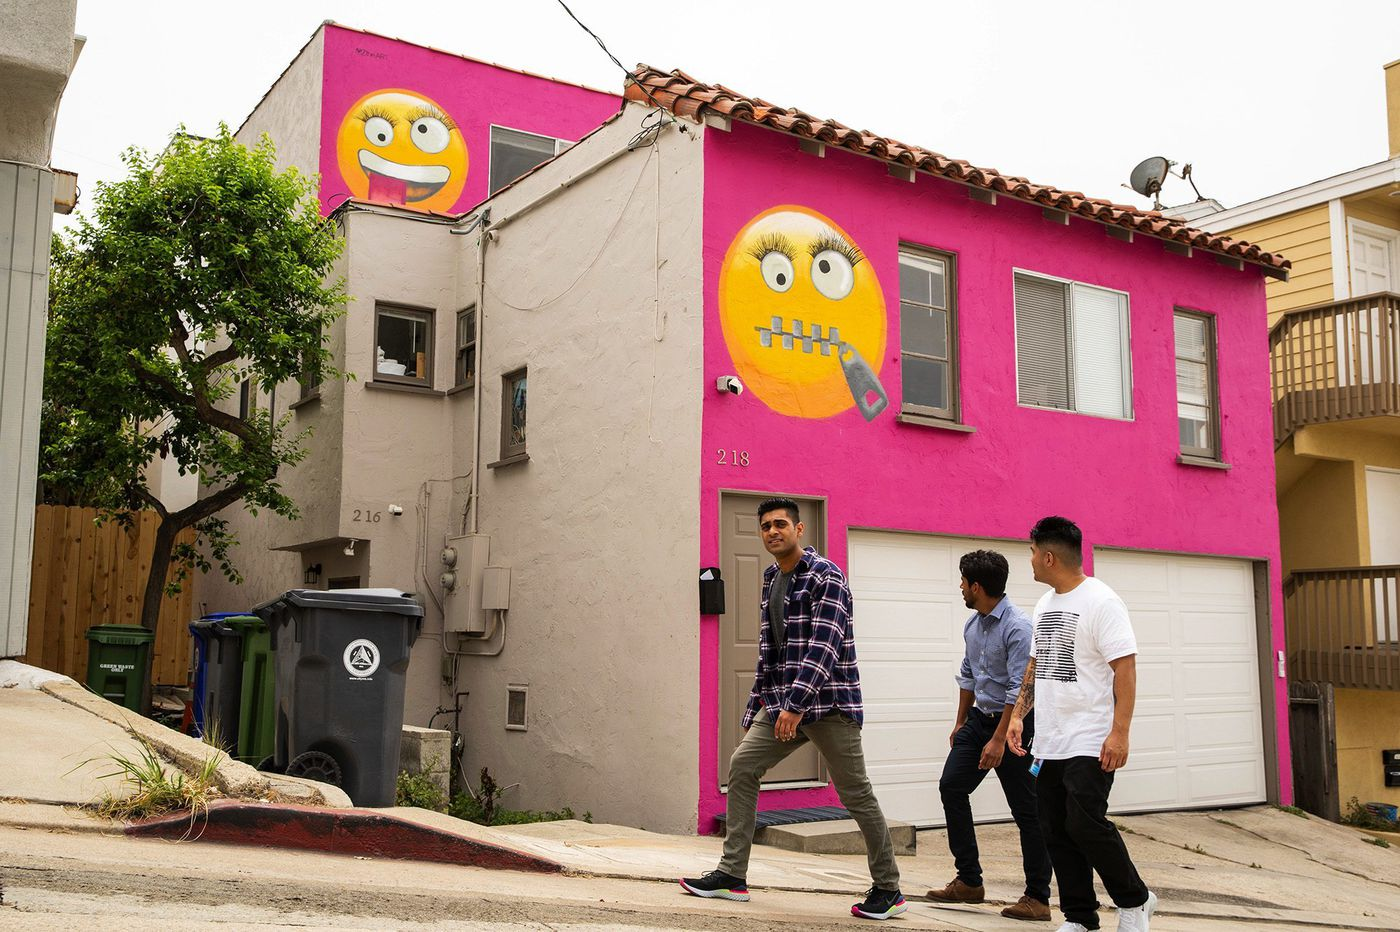 Hot-pink 'emoji house' sparks a familiar neighborhood debate about exterior paint